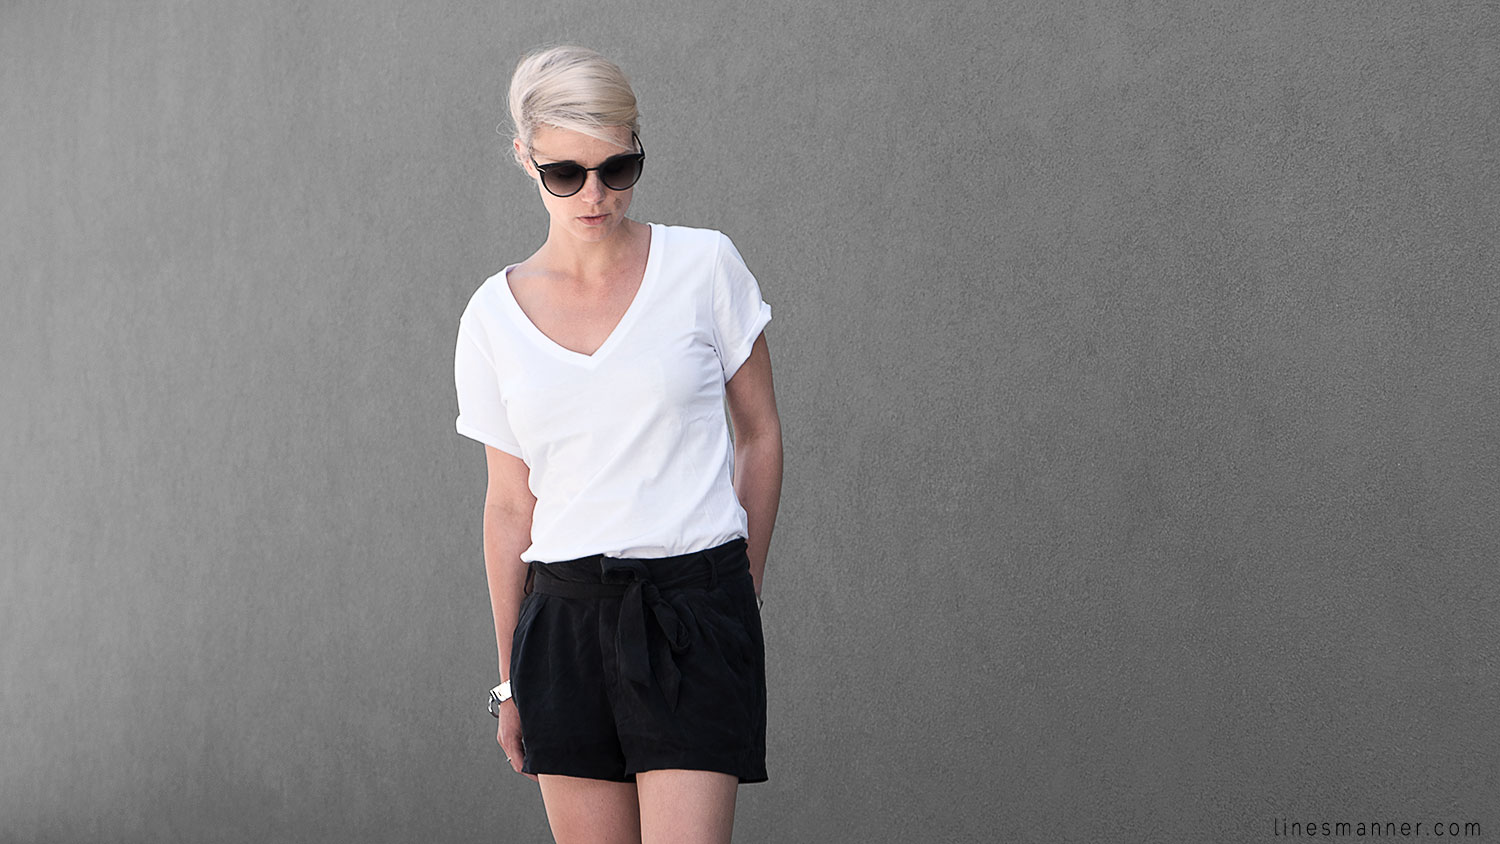 Lines-Manner-Minimal-Monochrome-Simplicity-Ethical-Organic-Fashion-Outfit-Details-Essentials-Black_and_White-Quality-Bon_Label-V_neck-Bright-7